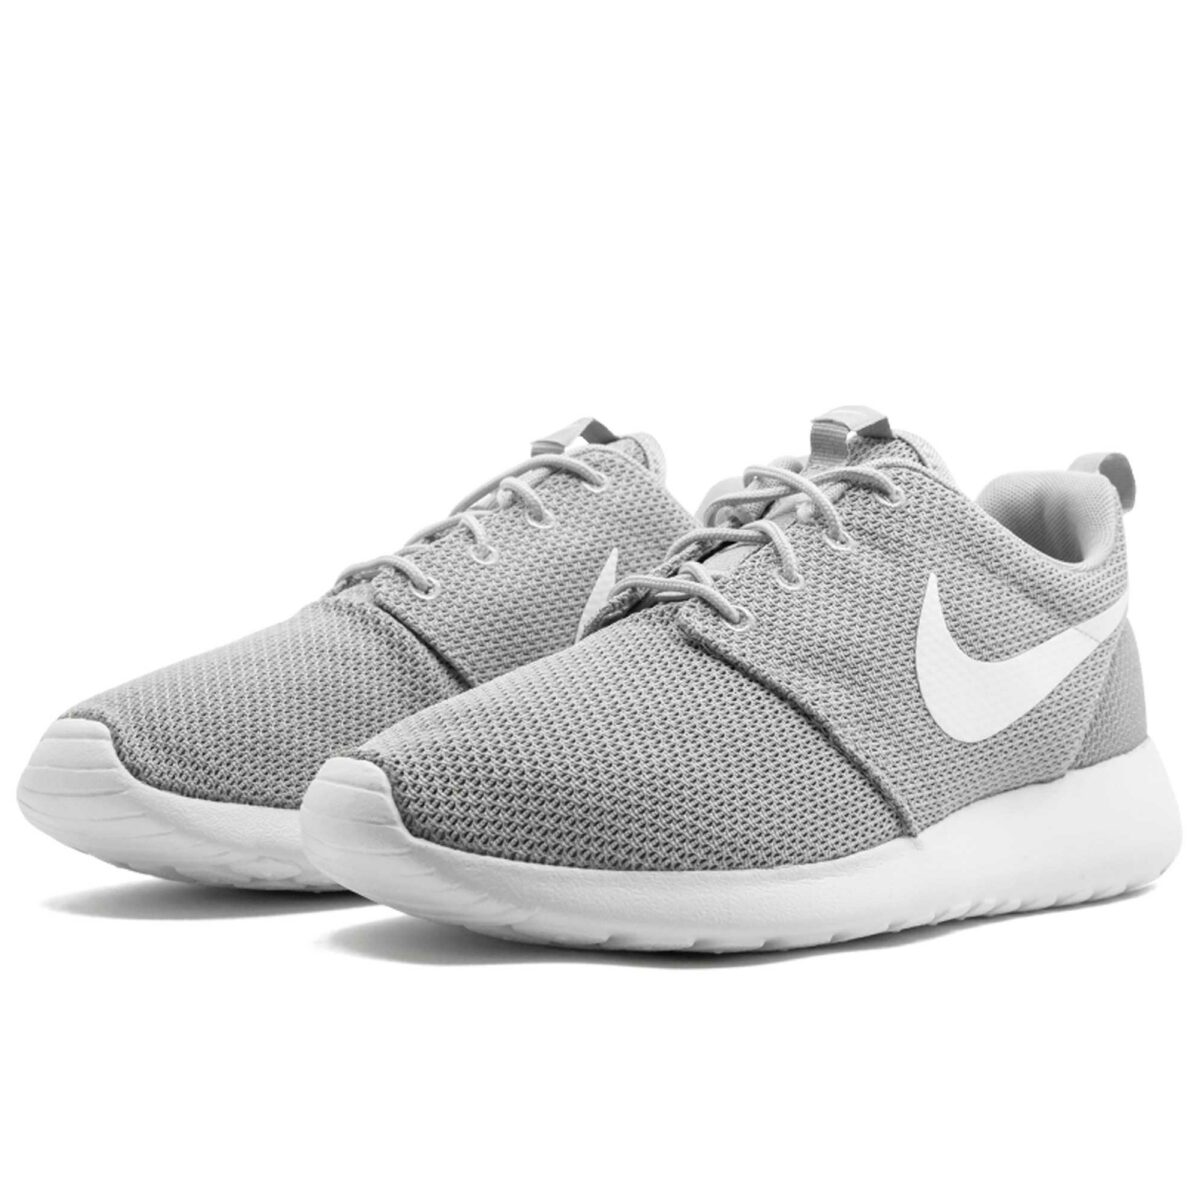 nike roshe one grey white 511881_023 купить